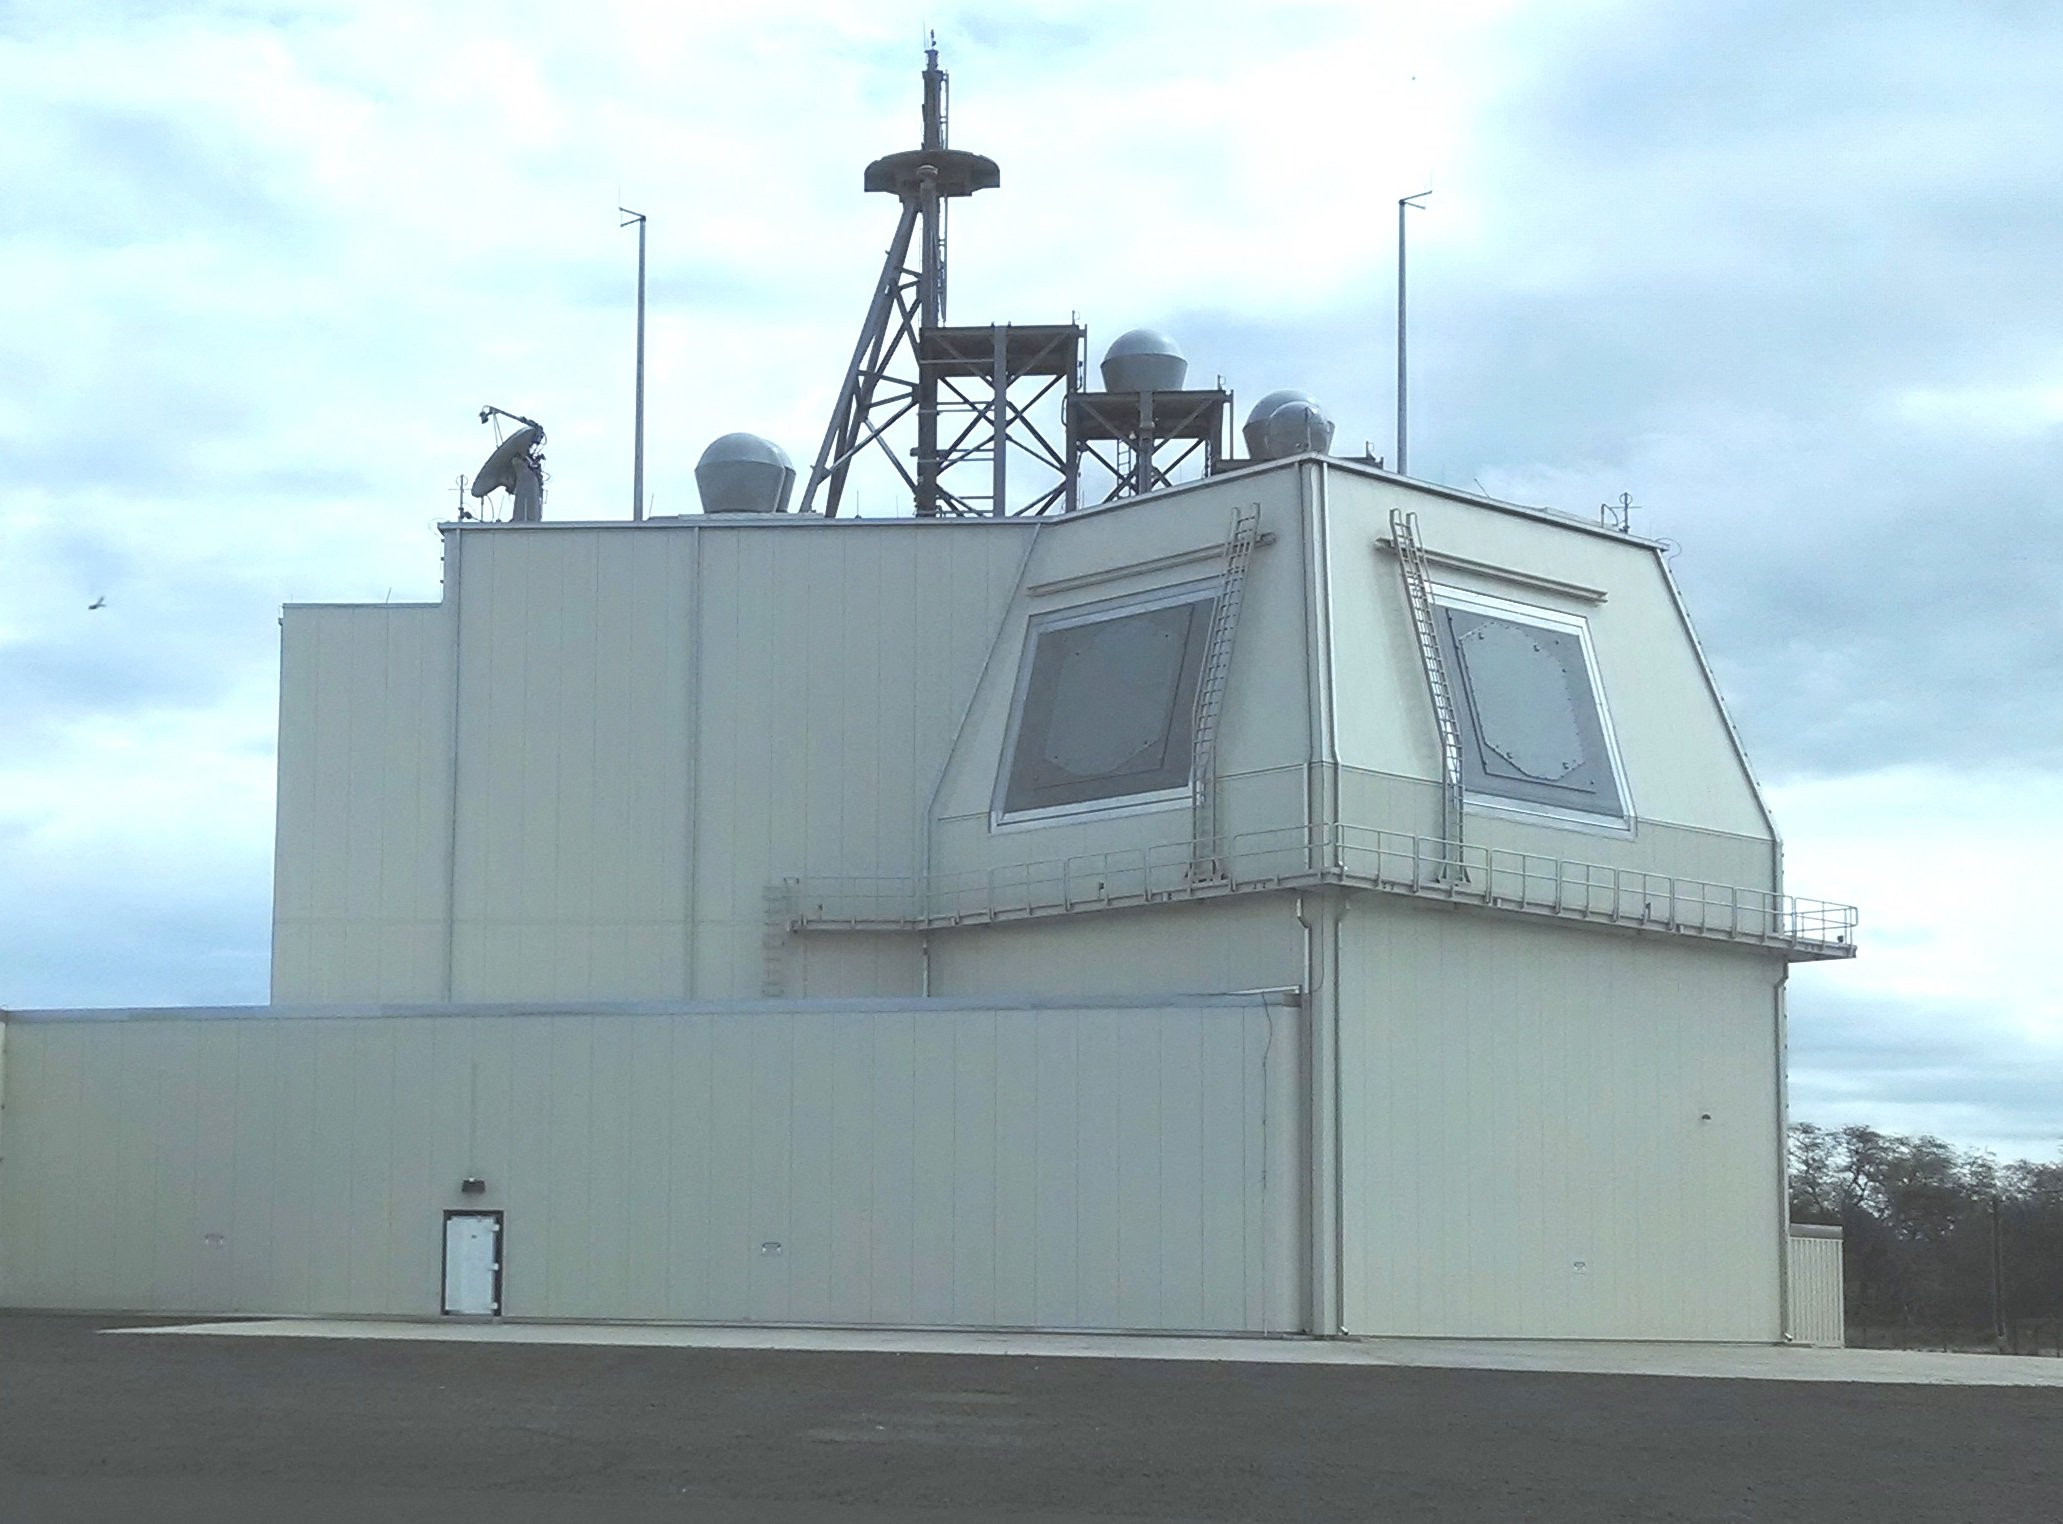 The deckhouse for the Aegis Ashore system at the Pacific Missile Range Facility. This is the test asset for the Aegis Ashore system on Jan. 8, 2014. US Navy Photo